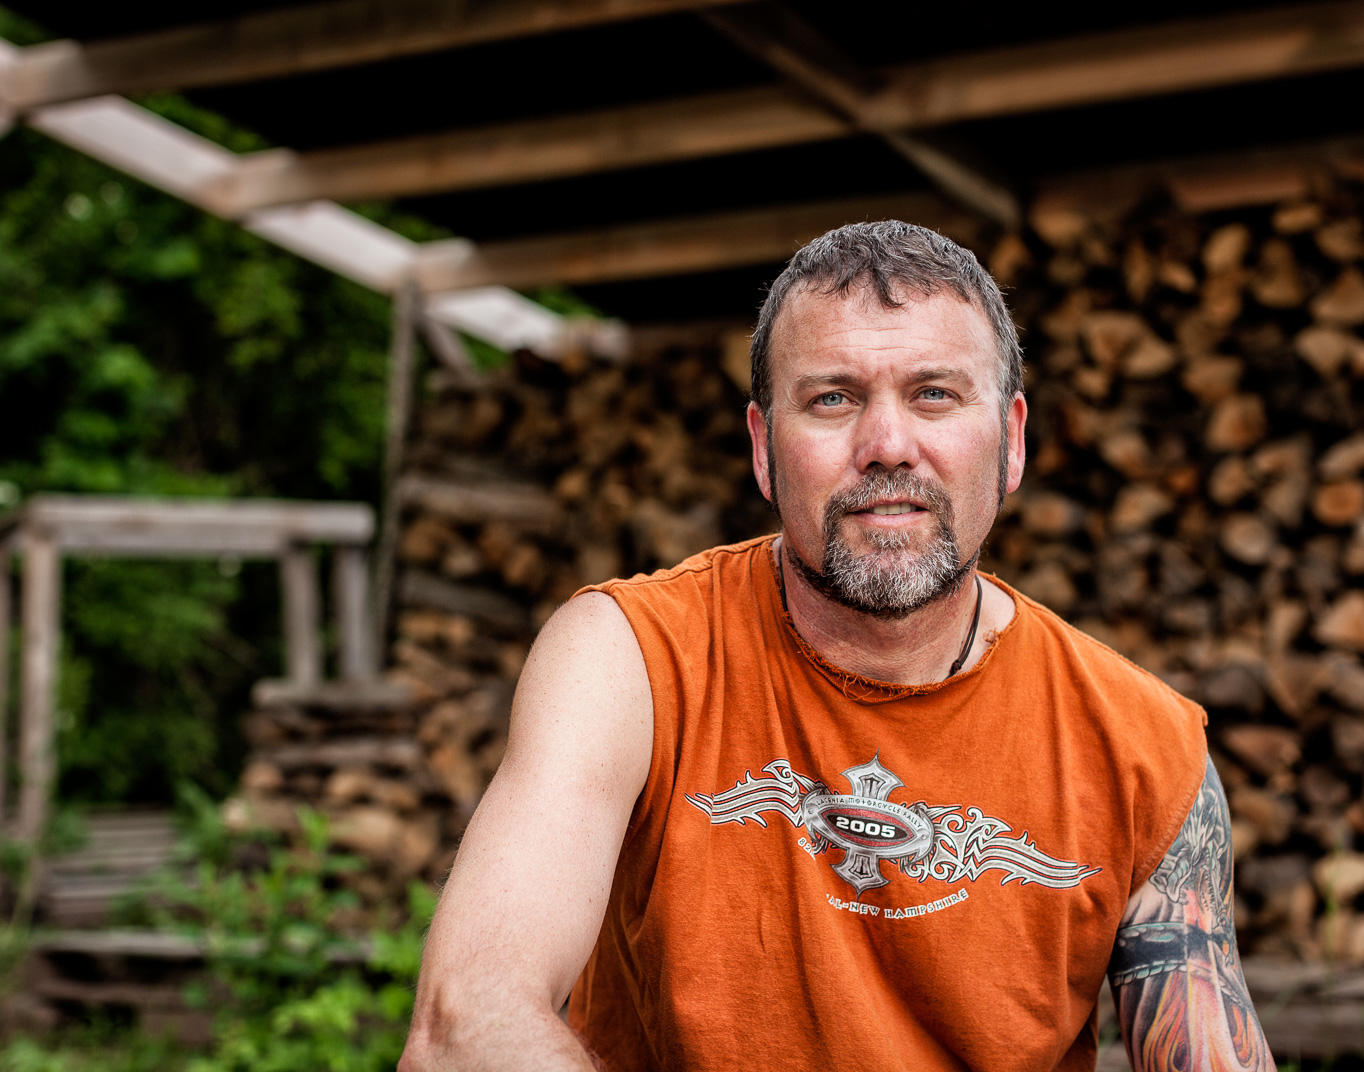 Connecticut man with Multiple Sclerosis sits in front of stacked wood pile